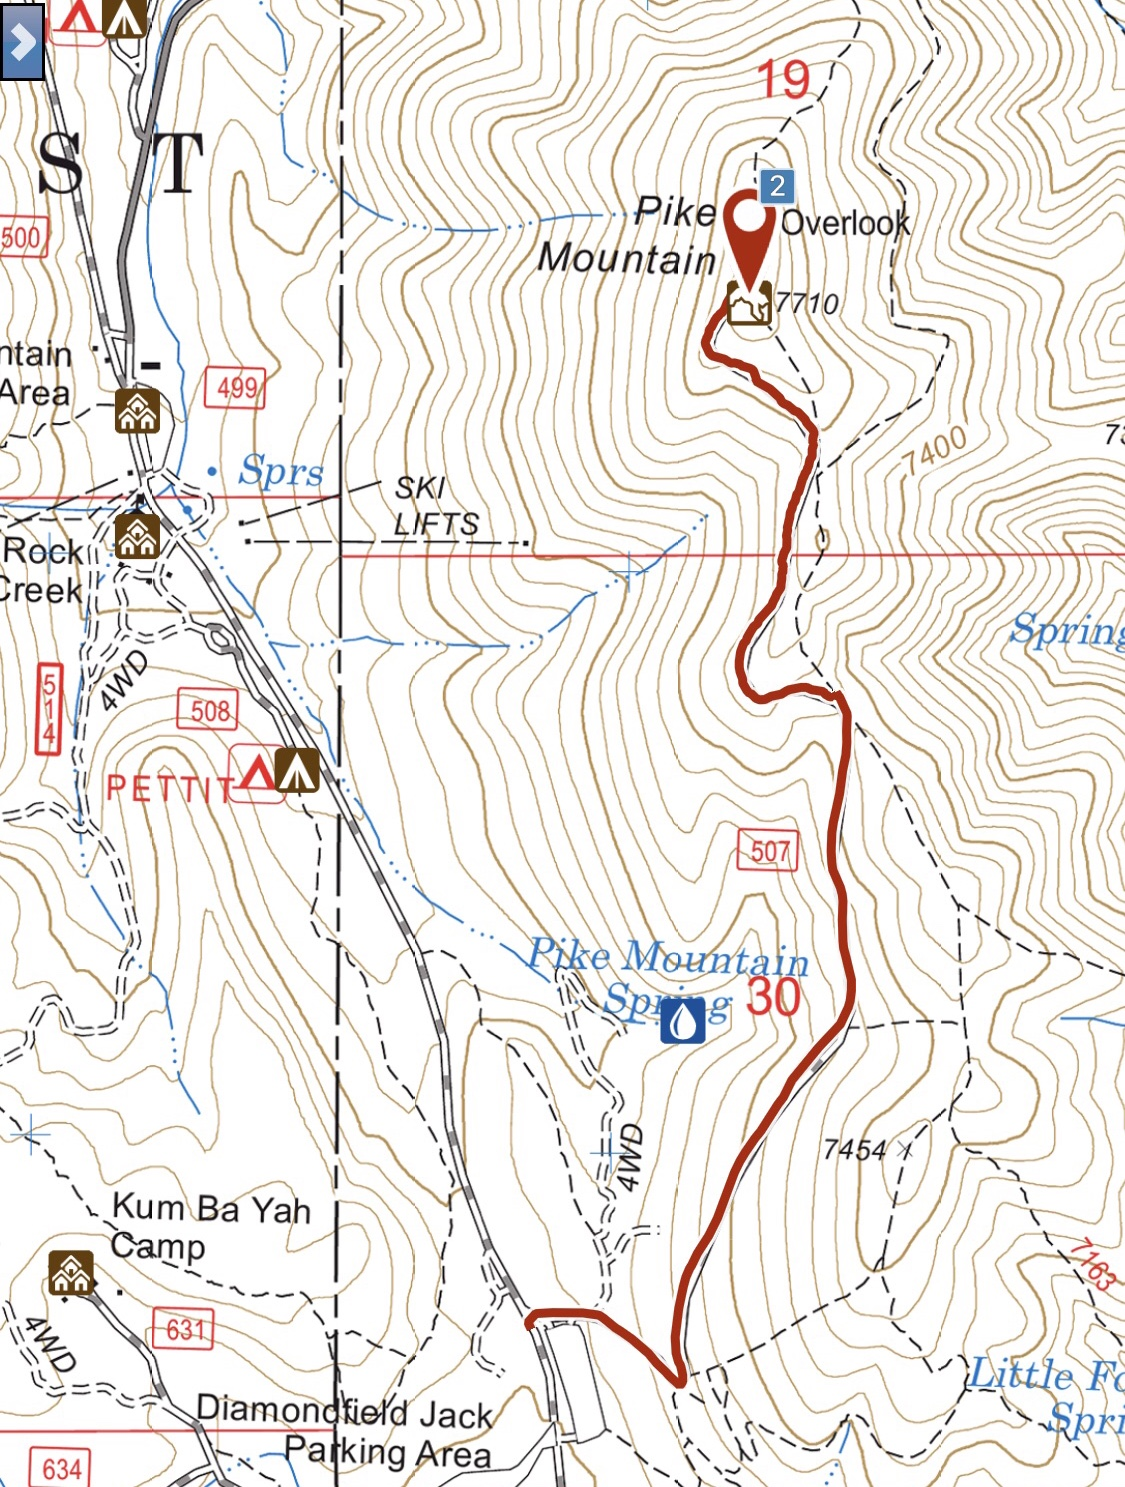 My GPS track for the road to the top of Pike Mountain. One waymdistance is 1.8 miles with 642 feet of elevation gain.